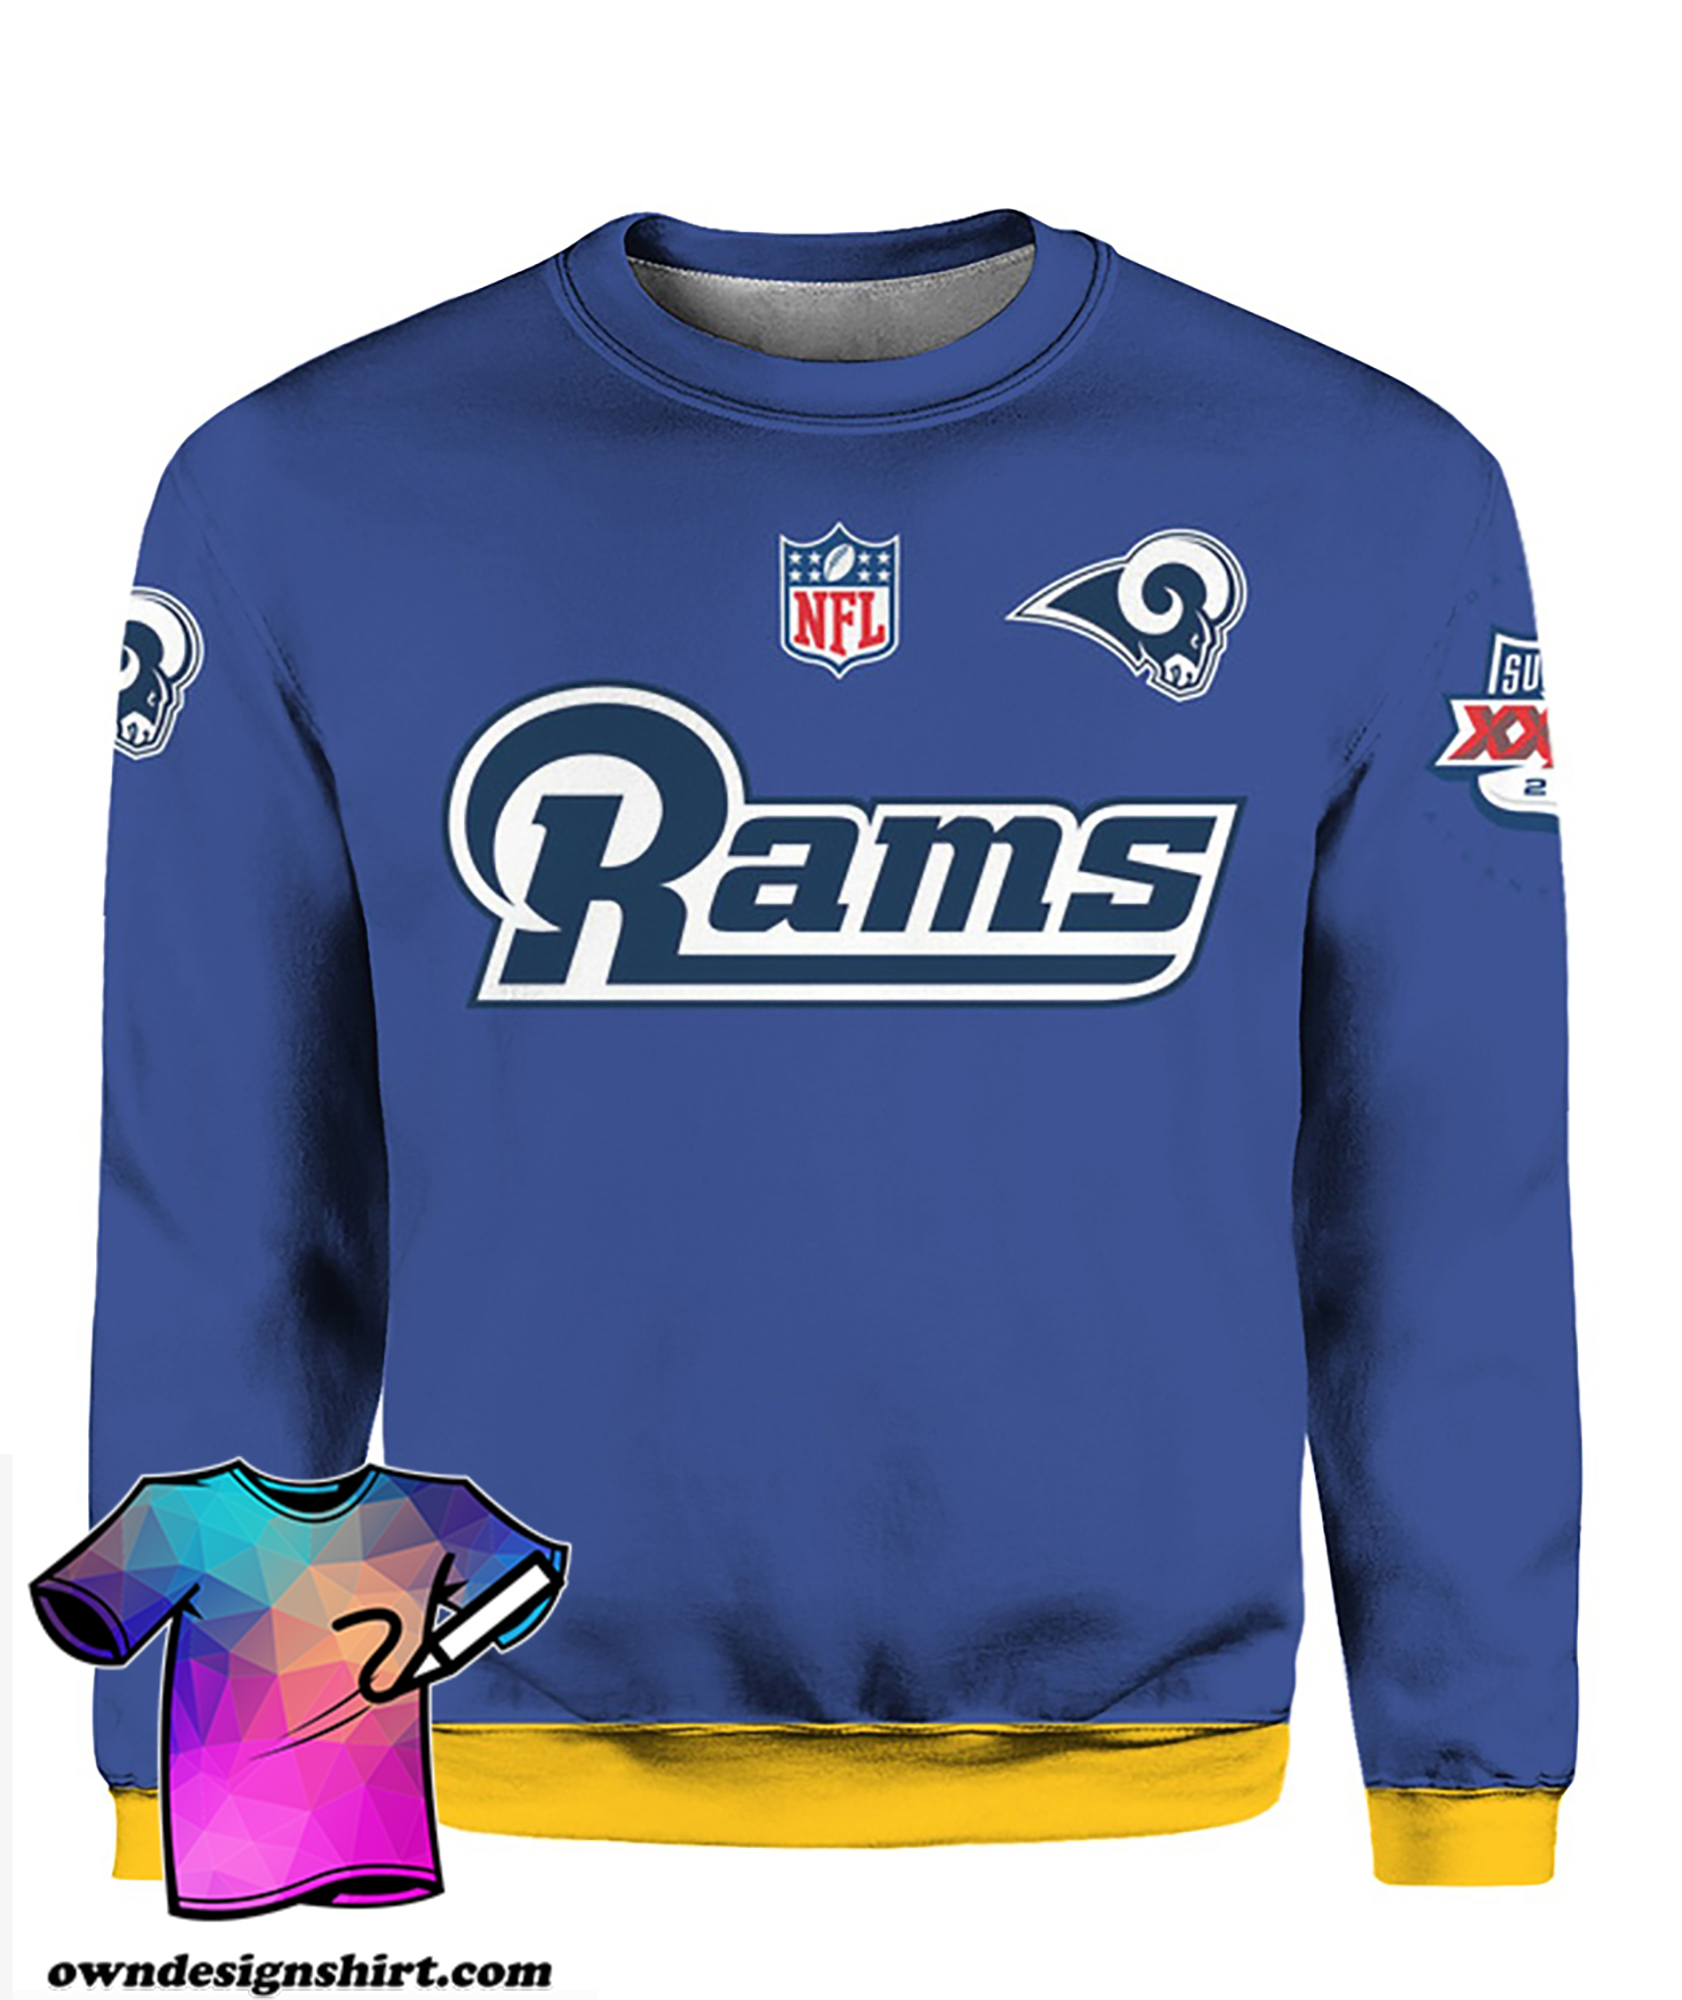 Stand for the flag kneel for the cross los angeles rams all over print shirt